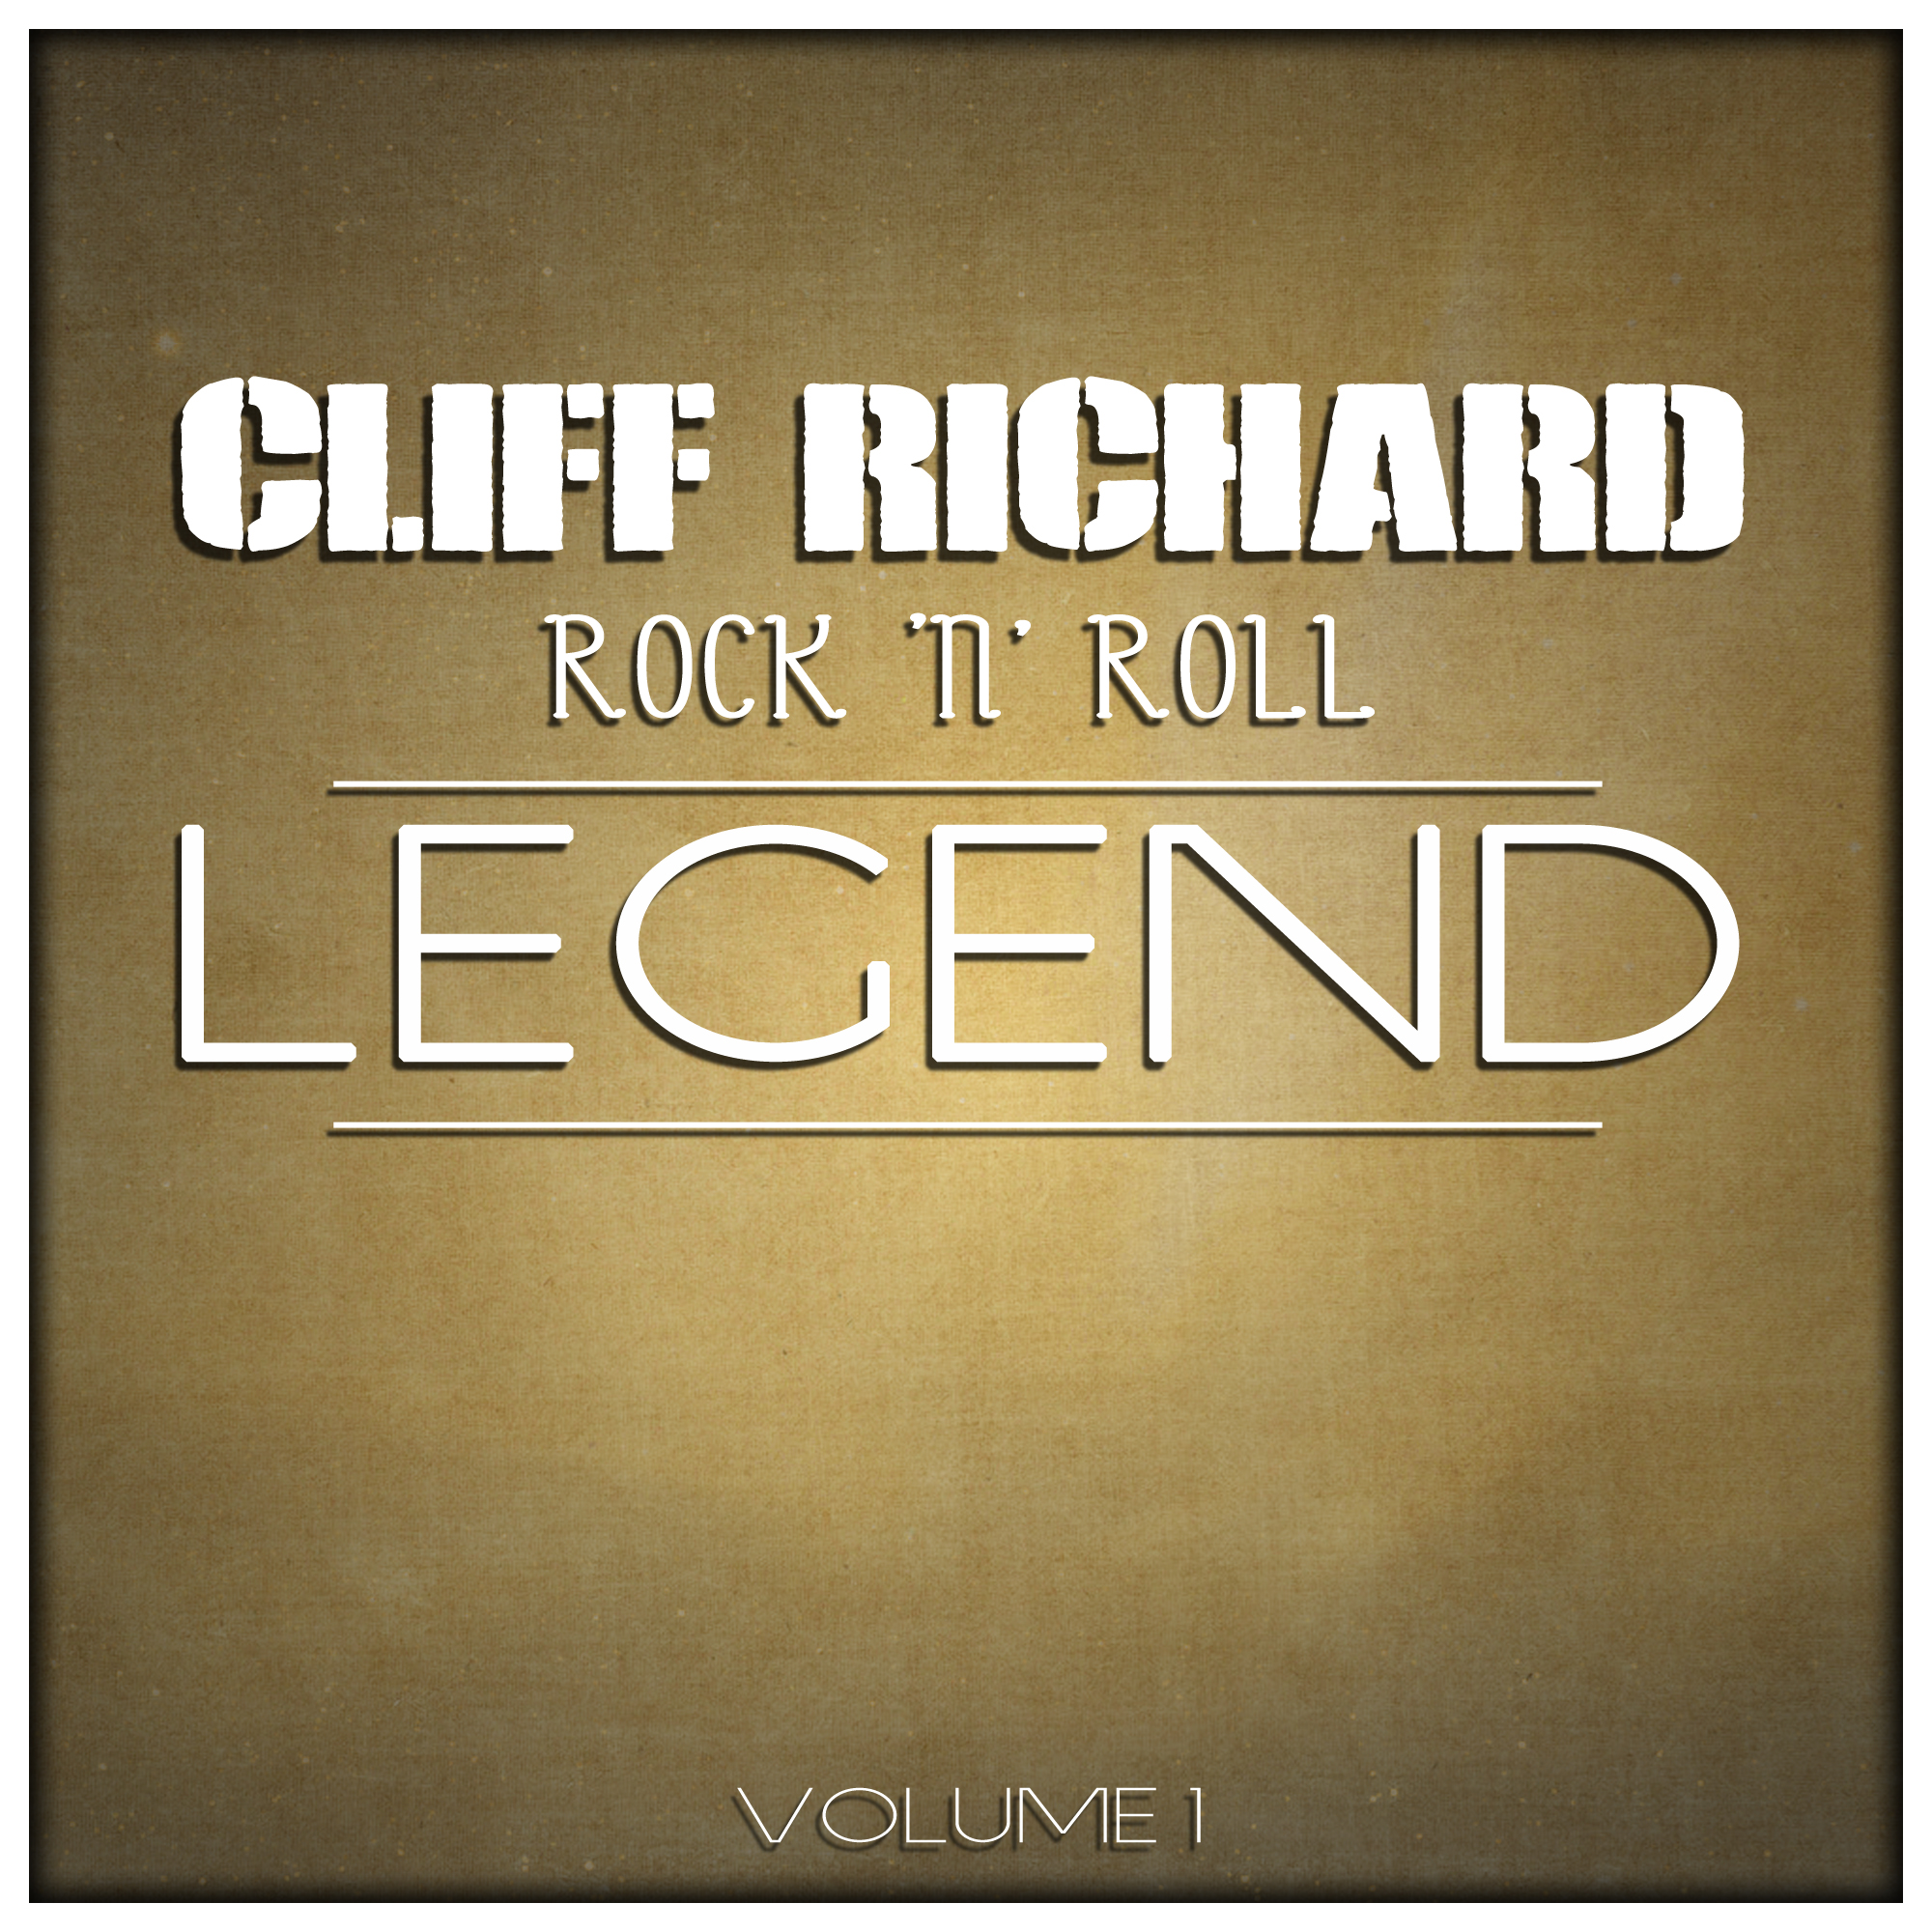 Cliff Richard - Rock 'n' Roll Legend - Volume 1